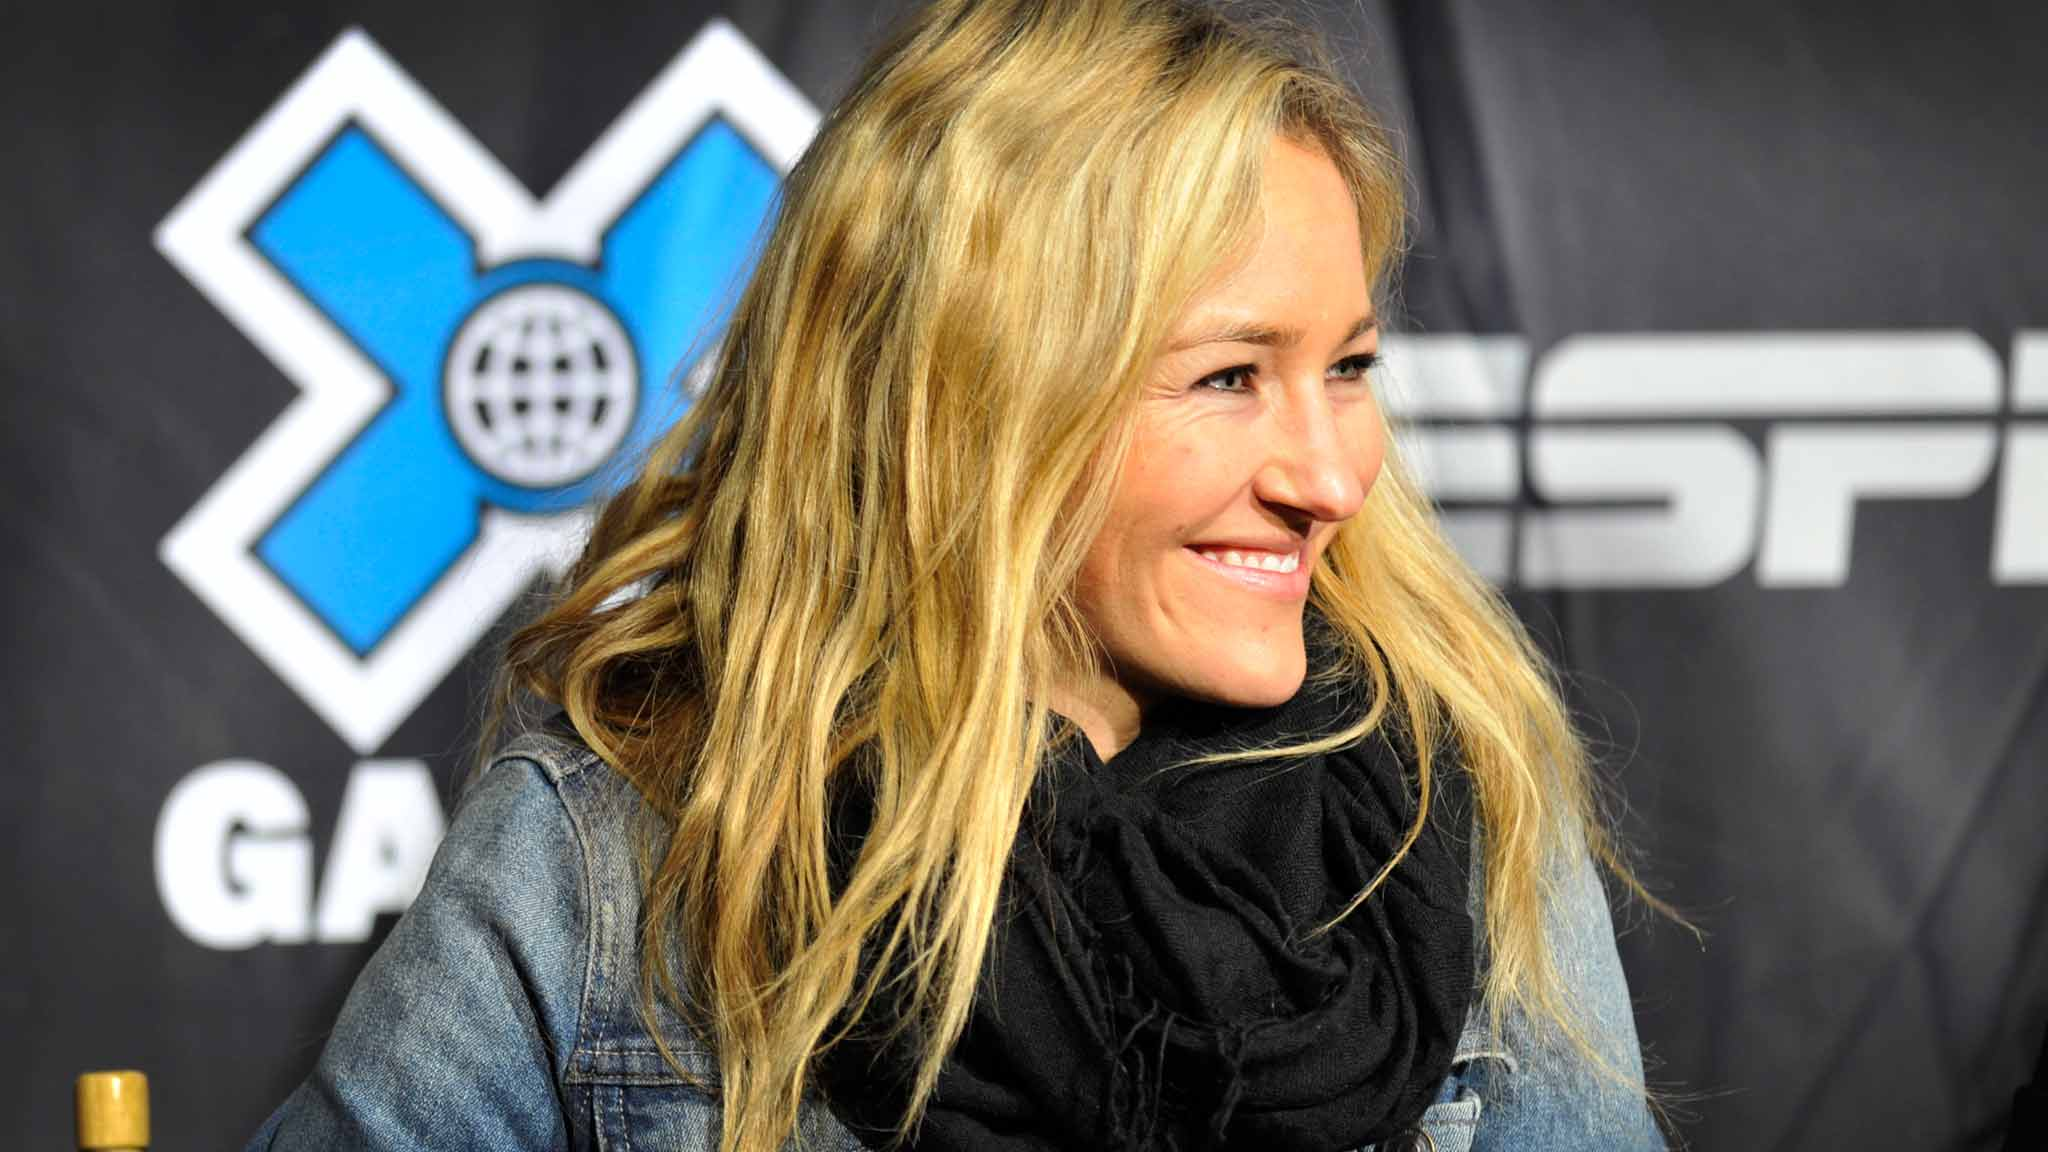 Gretchen Bleiler attending the athlete press conference at Winter X Games Aspen 2012.